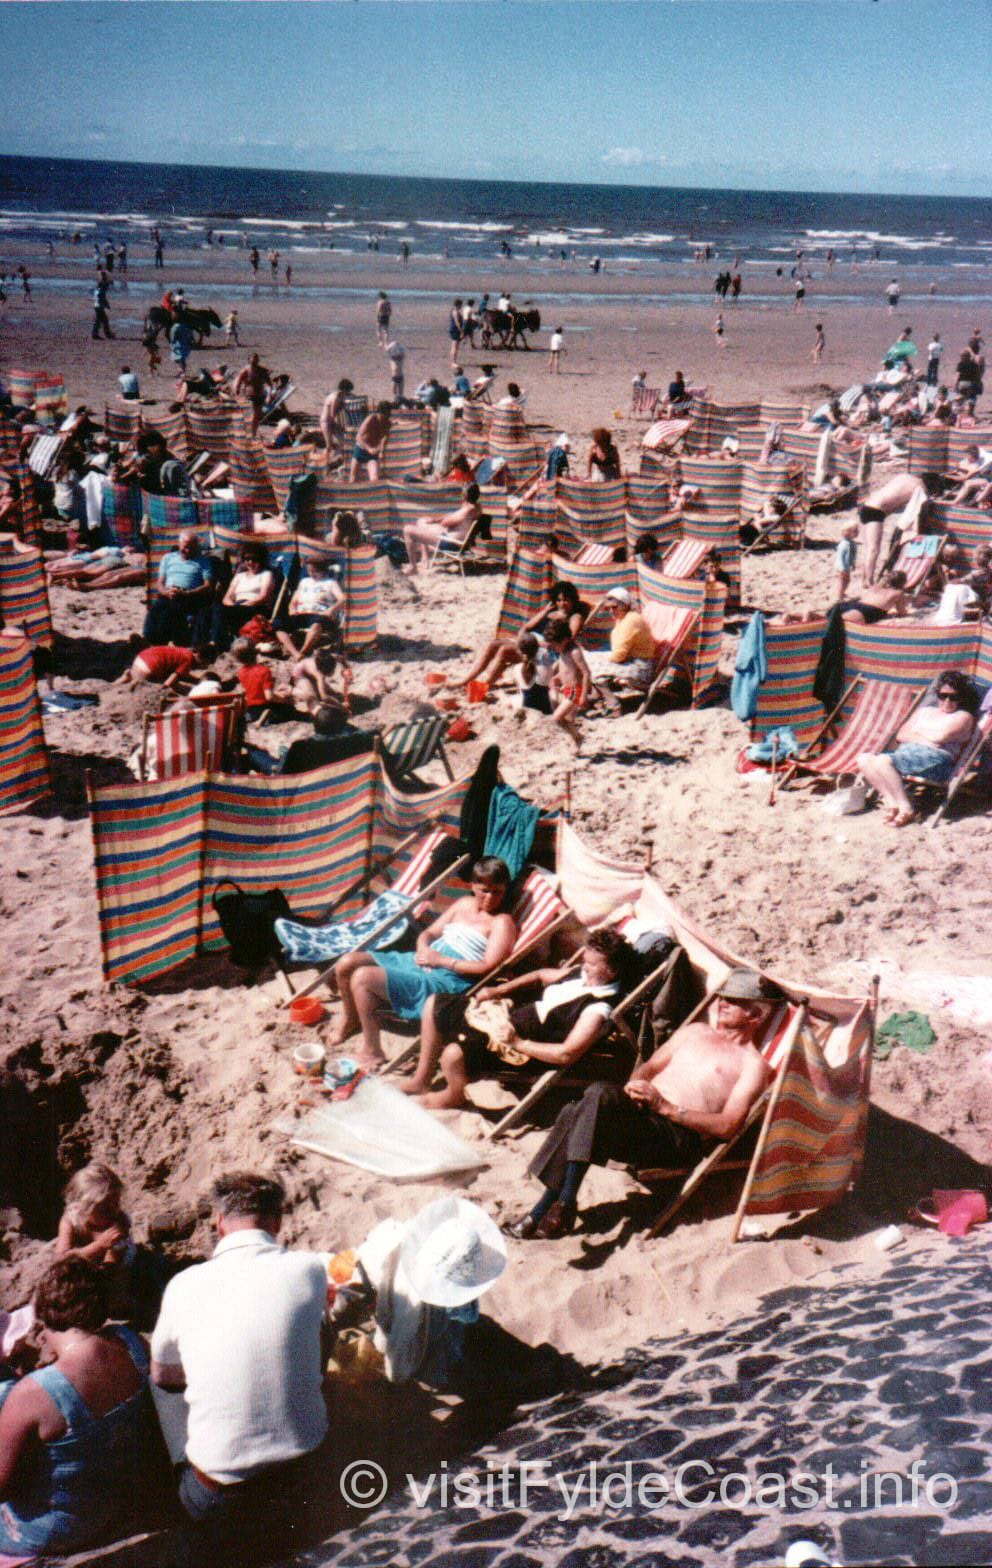 Busy beach -donkey rides and deckchairs. Old Blackpool photos, archives from Visit Fylde Coast